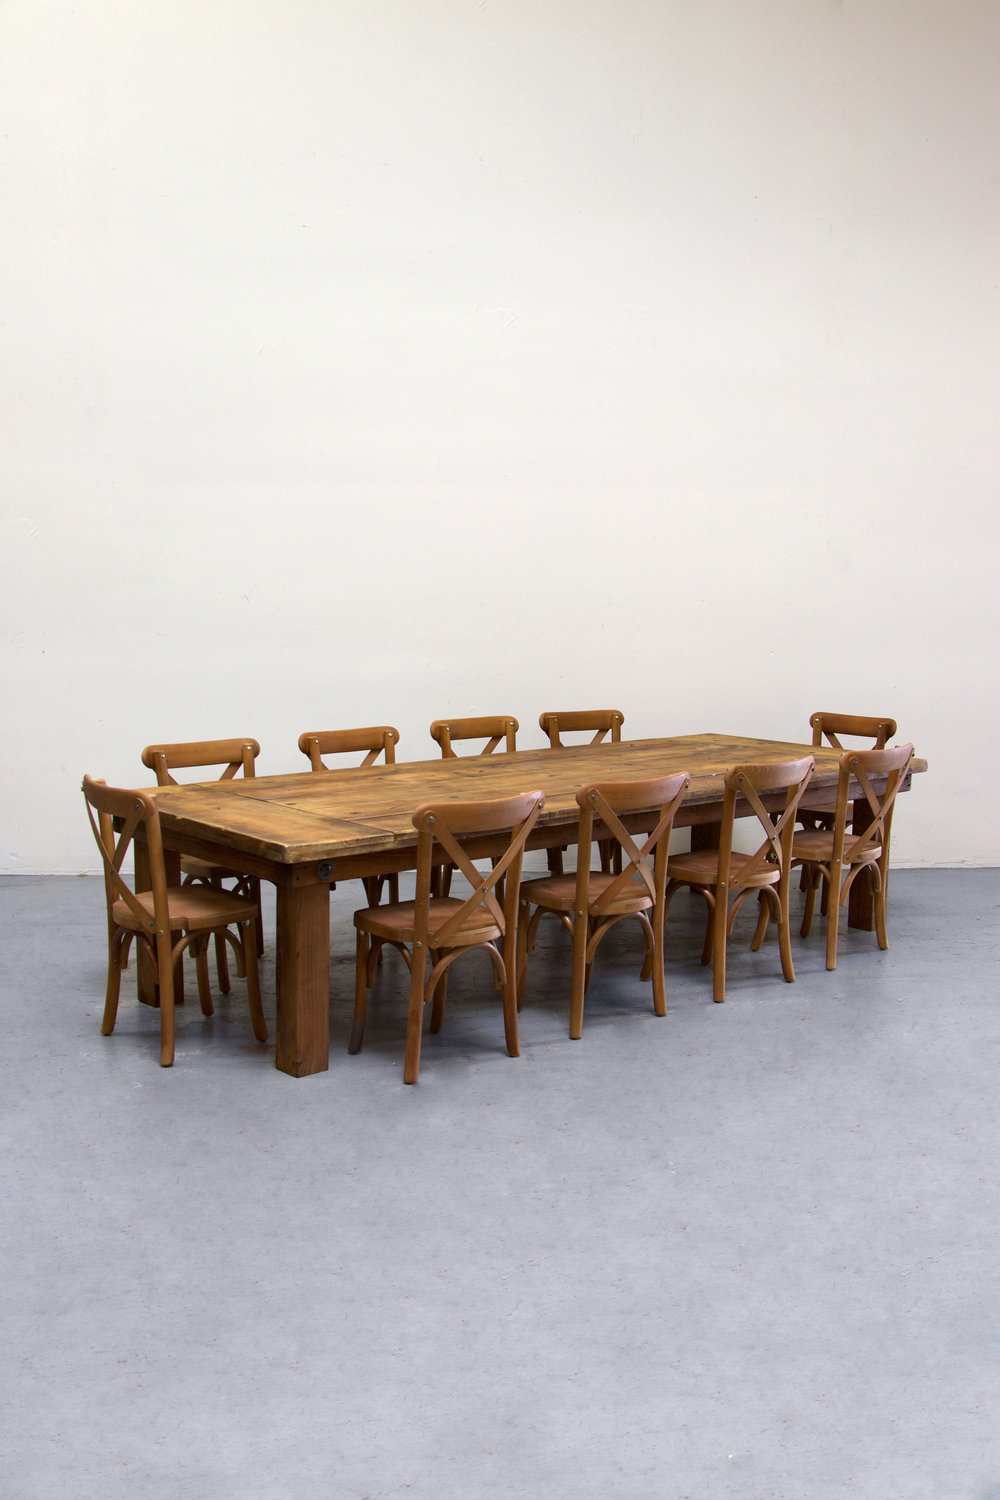 1 Kids Honey Brown Farm Table w/ 10 Cross-Back Chairs $140